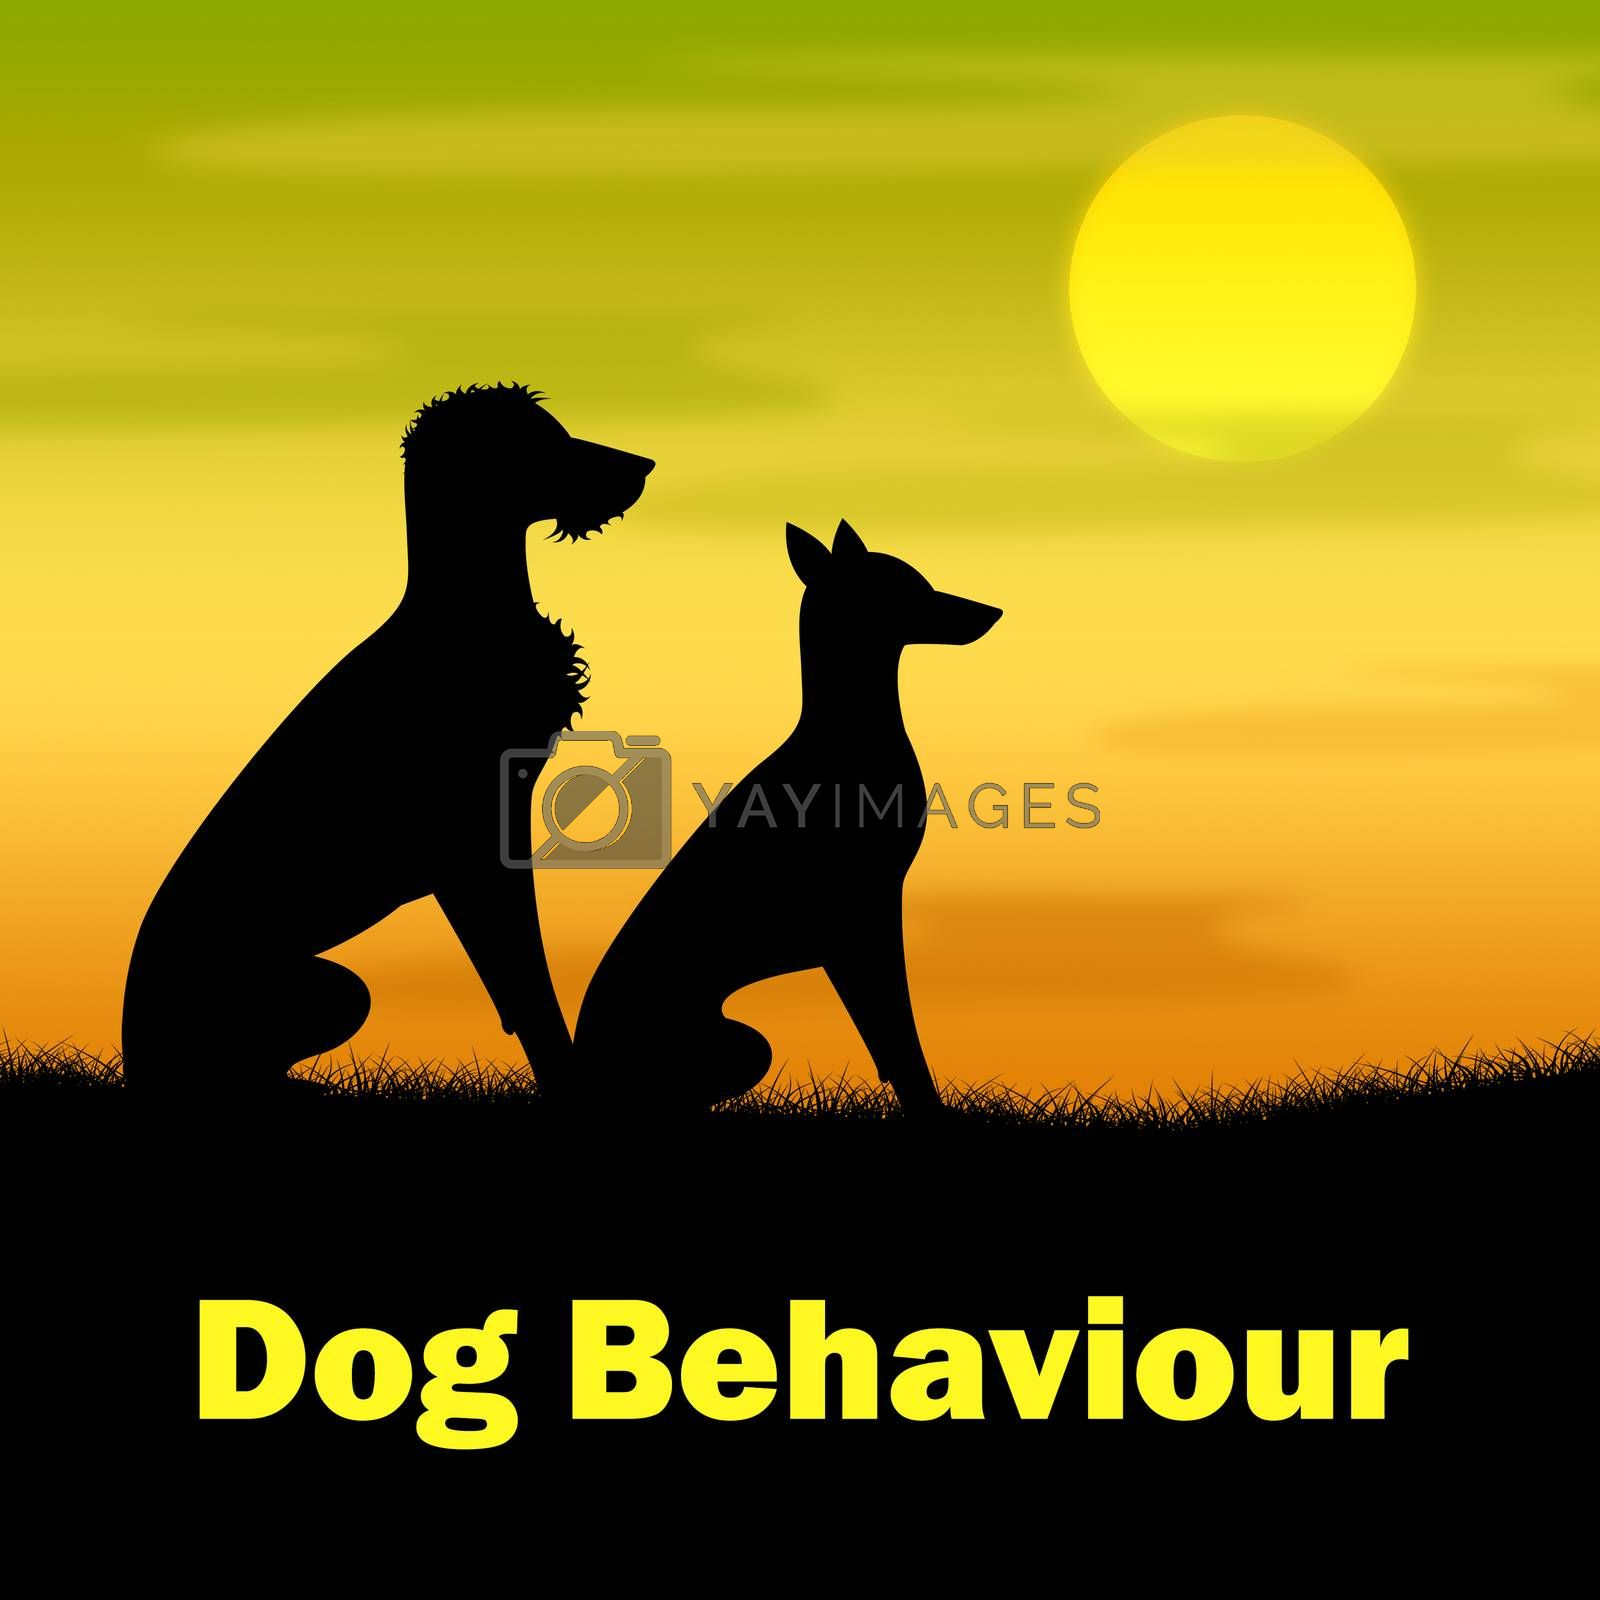 Dog Behaviour Representing Evening Behave And Doggie